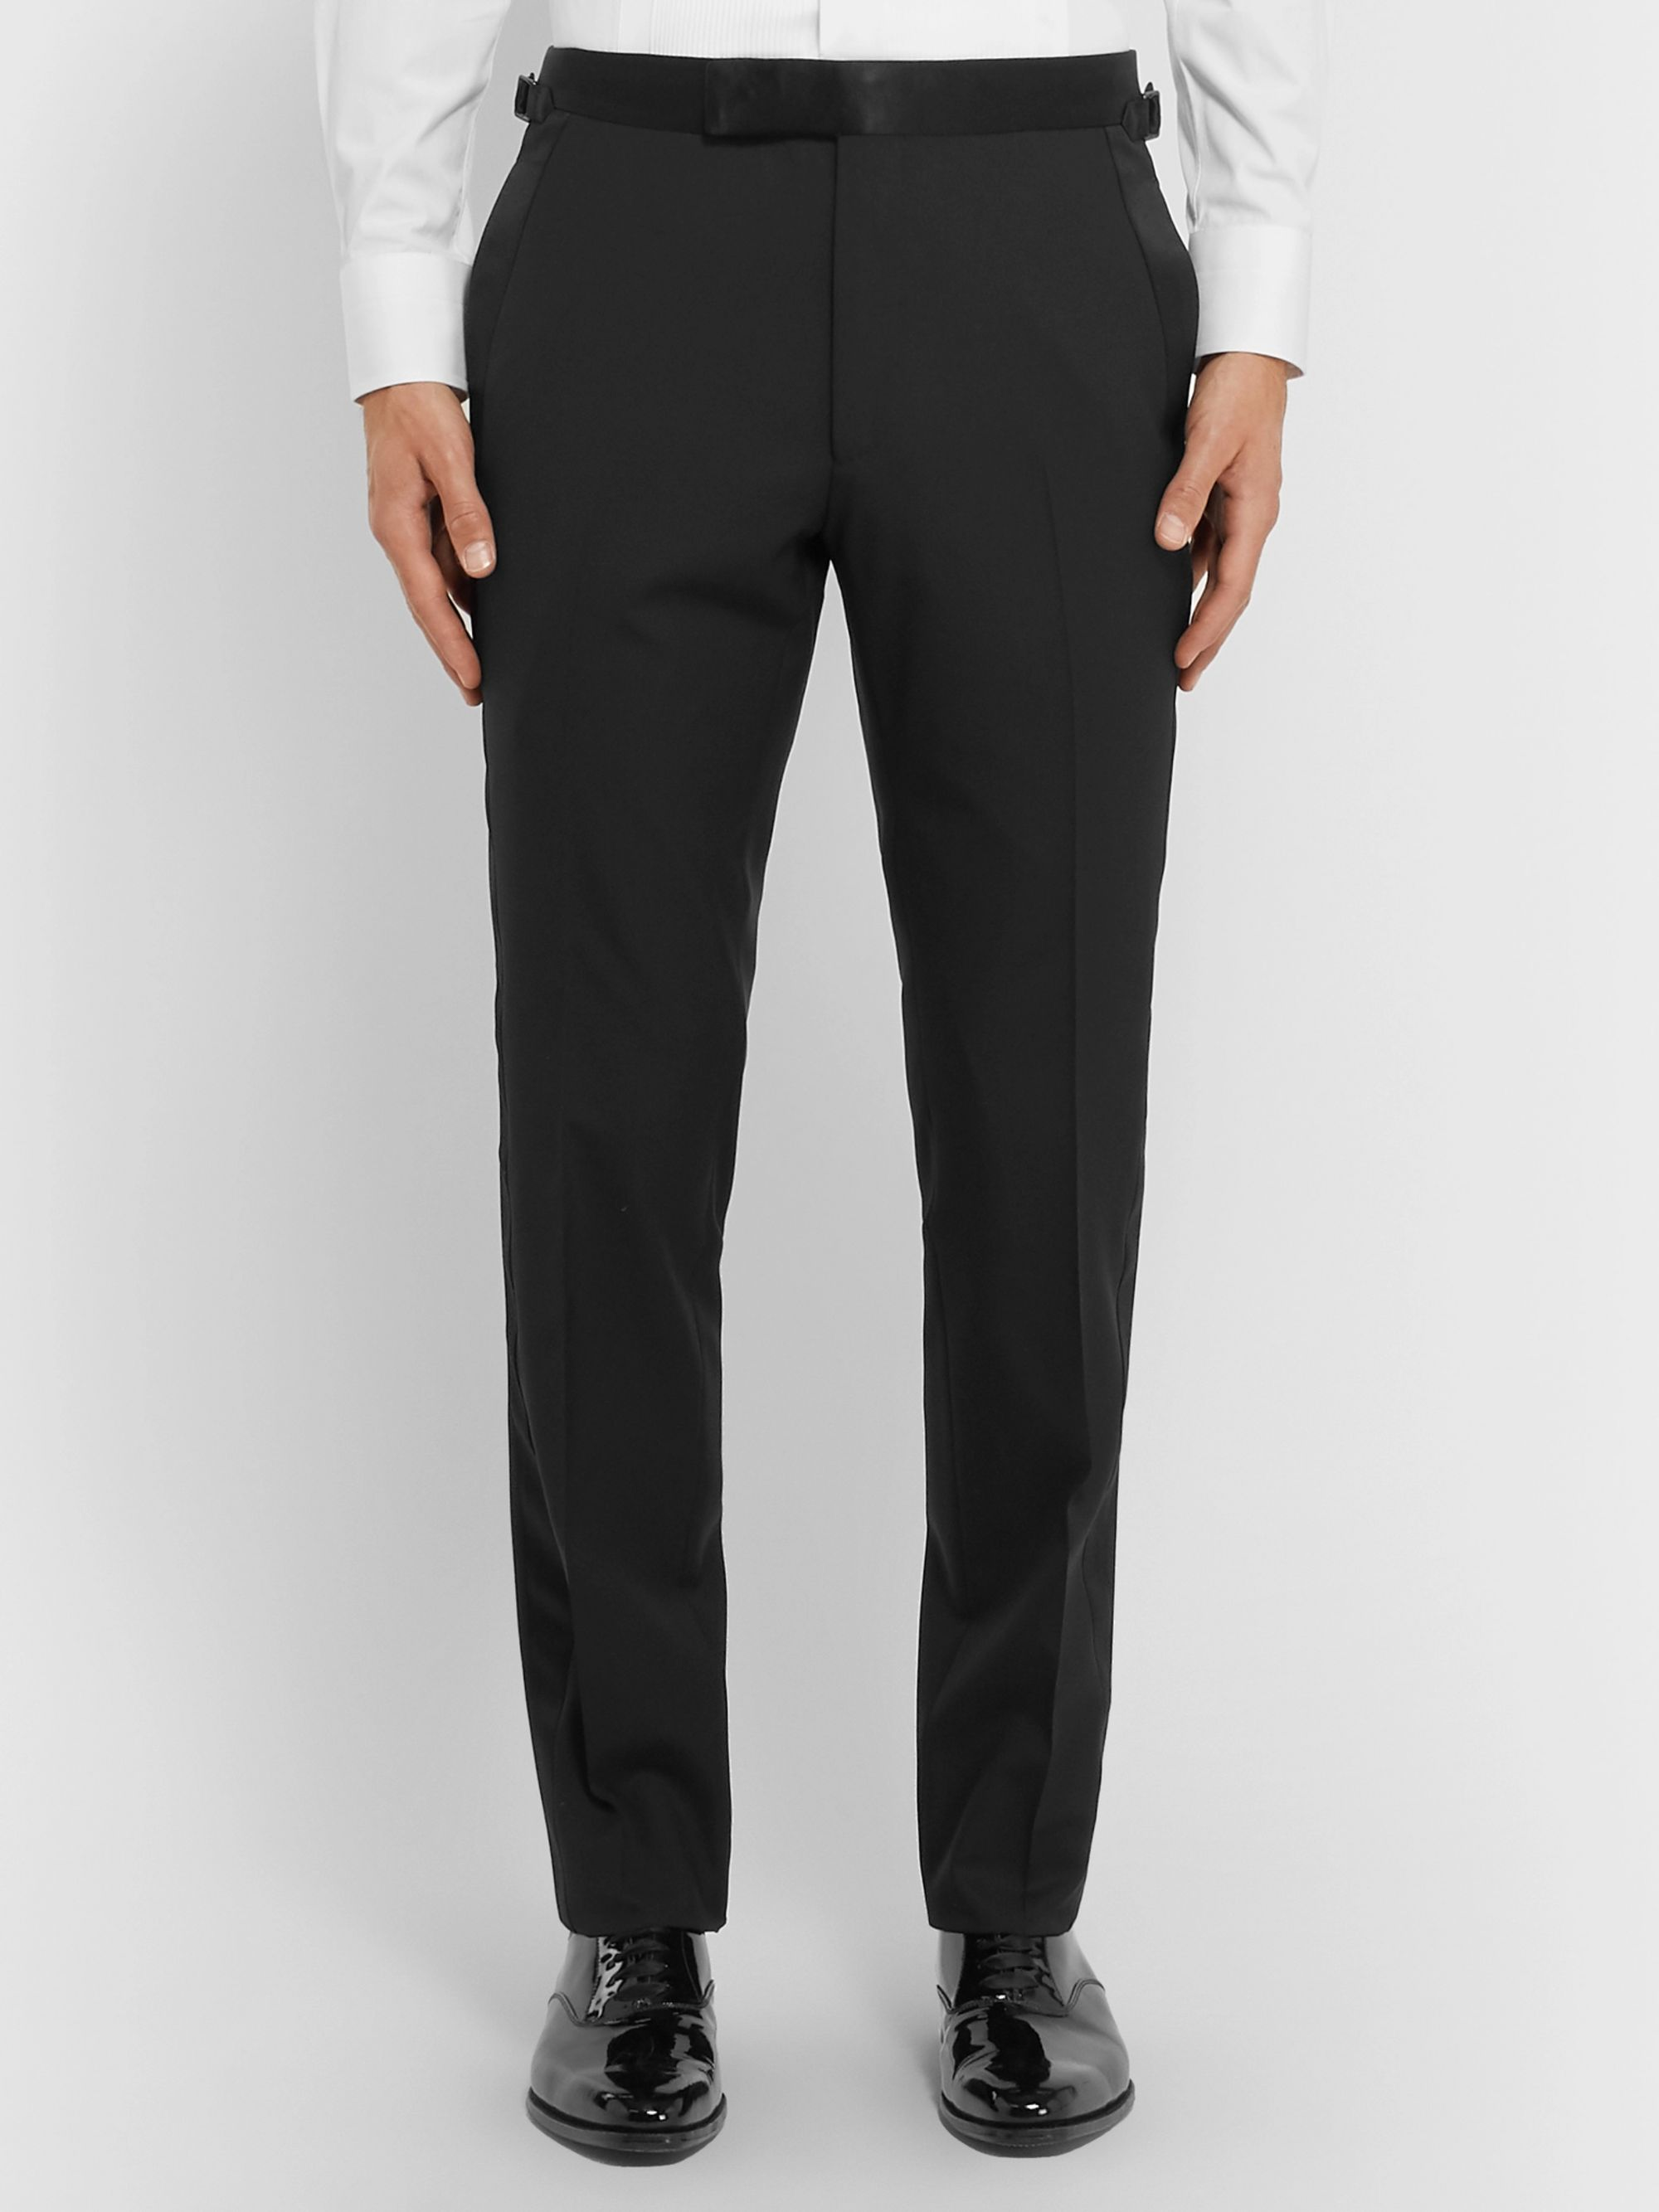 TOM FORD Black Shelton Slim-Fit Satin-Trimmed Wool Tuxedo Trousers